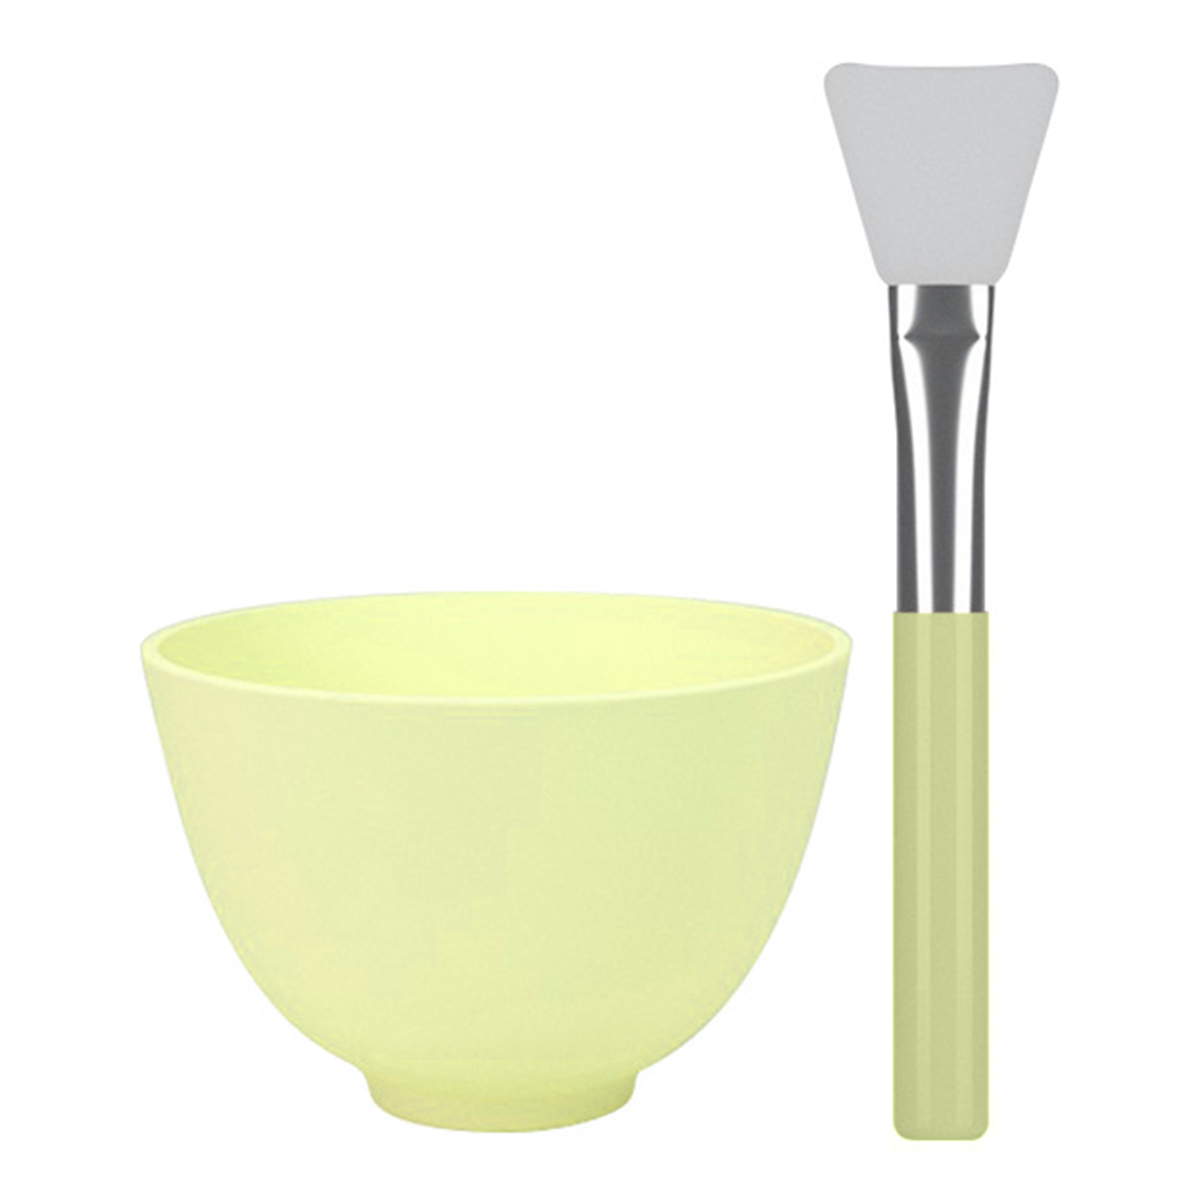 Brand Face Mask Mixing Bowl DIY Facial Mask Mixing Bowls With Silicone Hairless Brush Beauty Tools Toiletry Kits